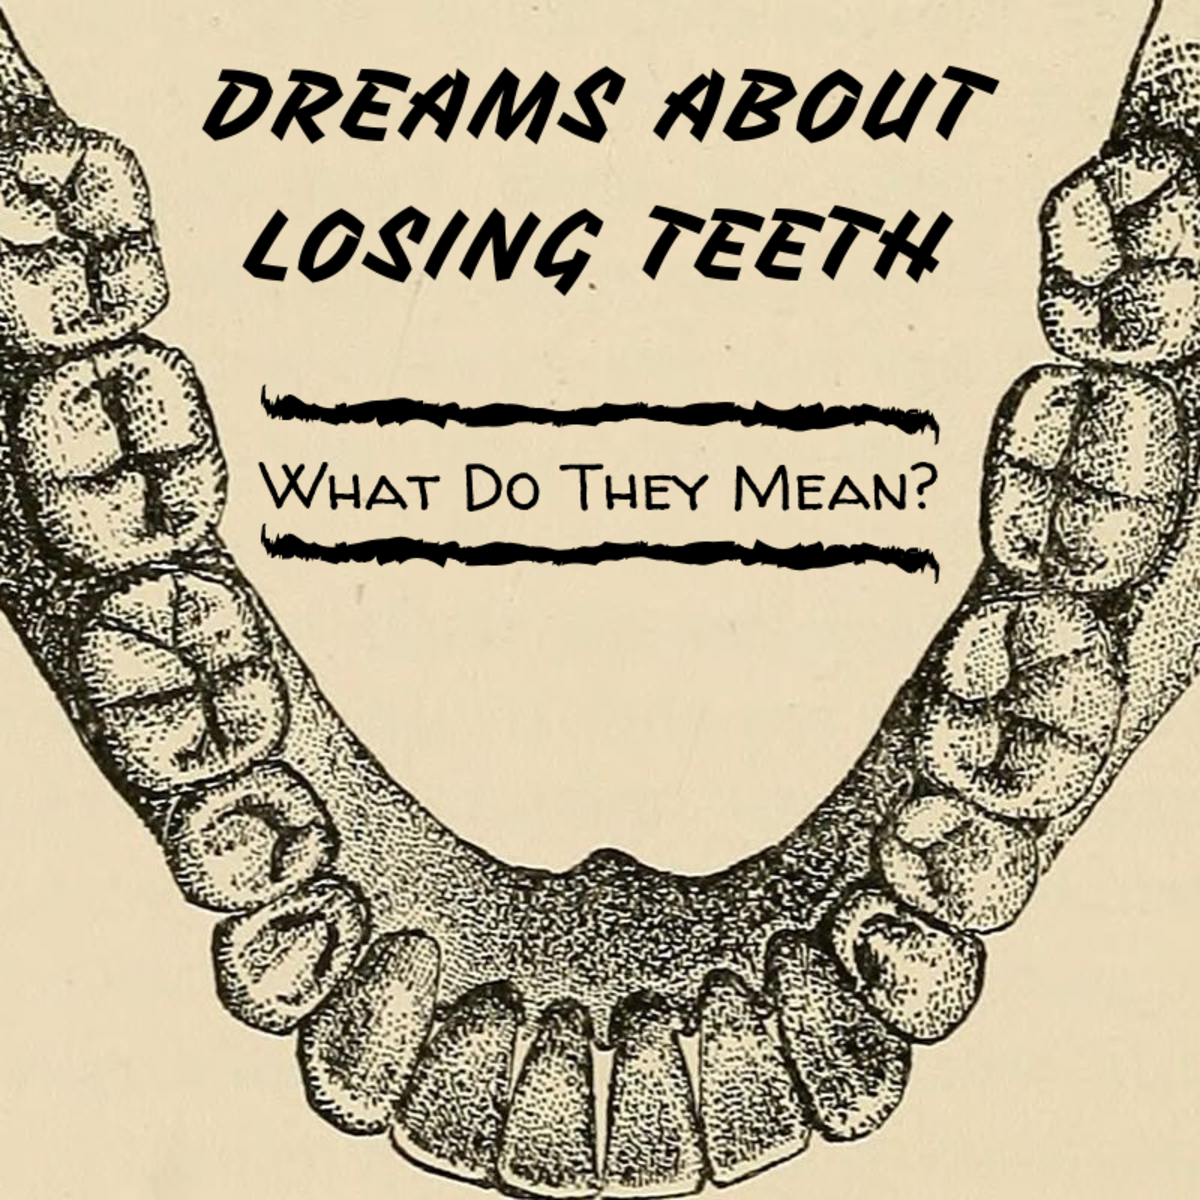 Dreams about teeth falling out are incredibly common, and for most, quite alarming. But what do they mean?